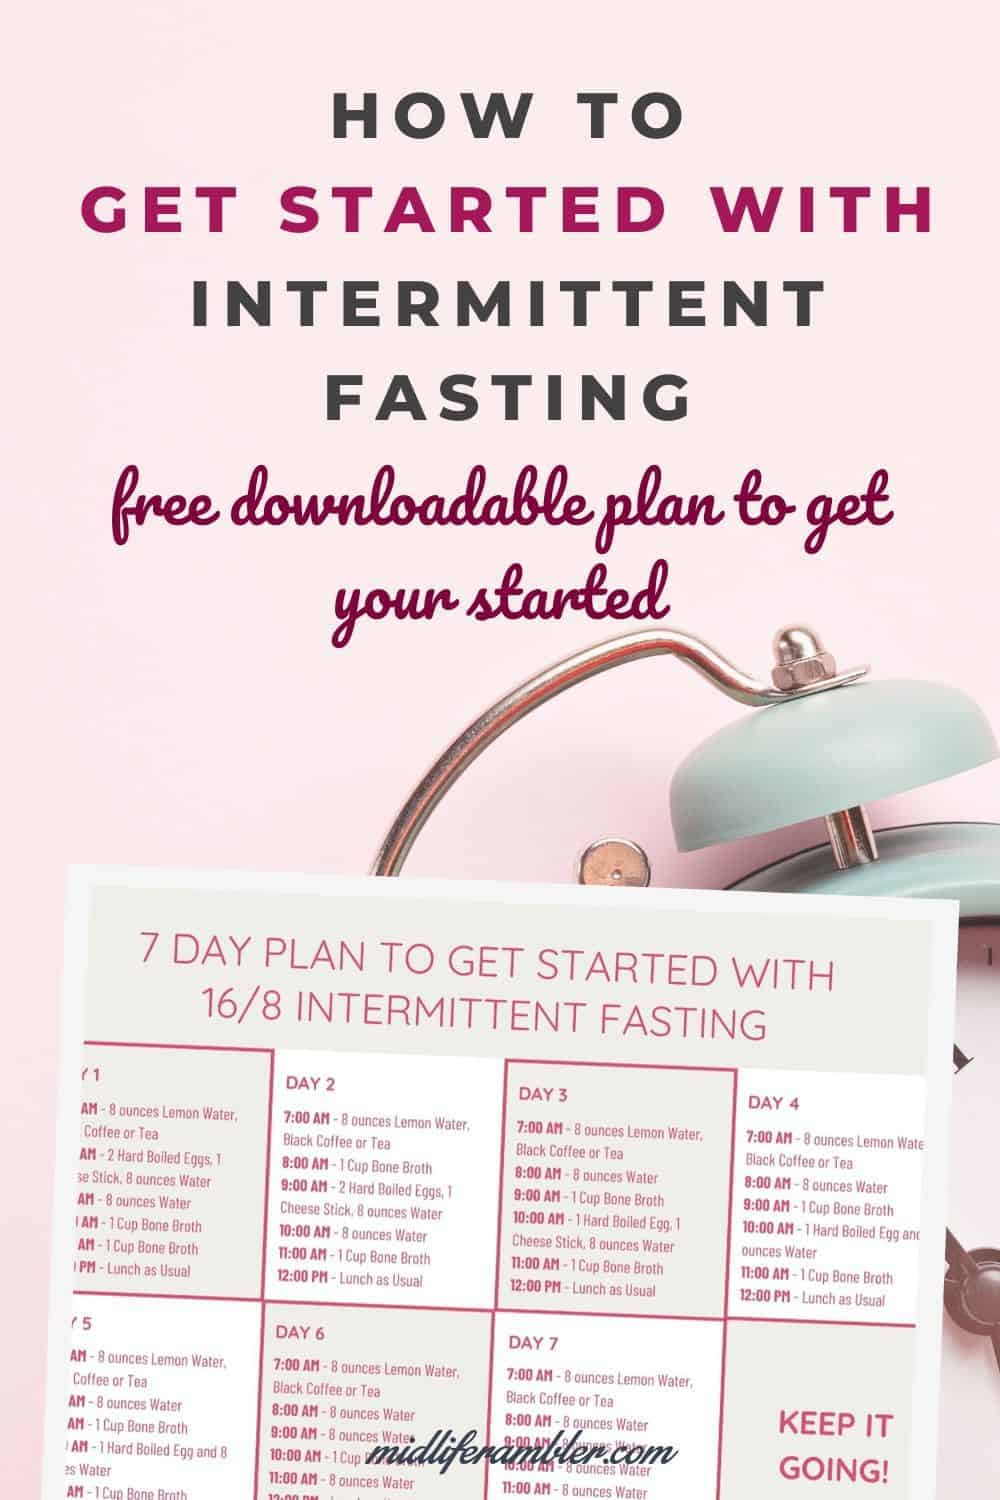 Your 7-Day Plan to Get Started with Intermittent Fasting 17